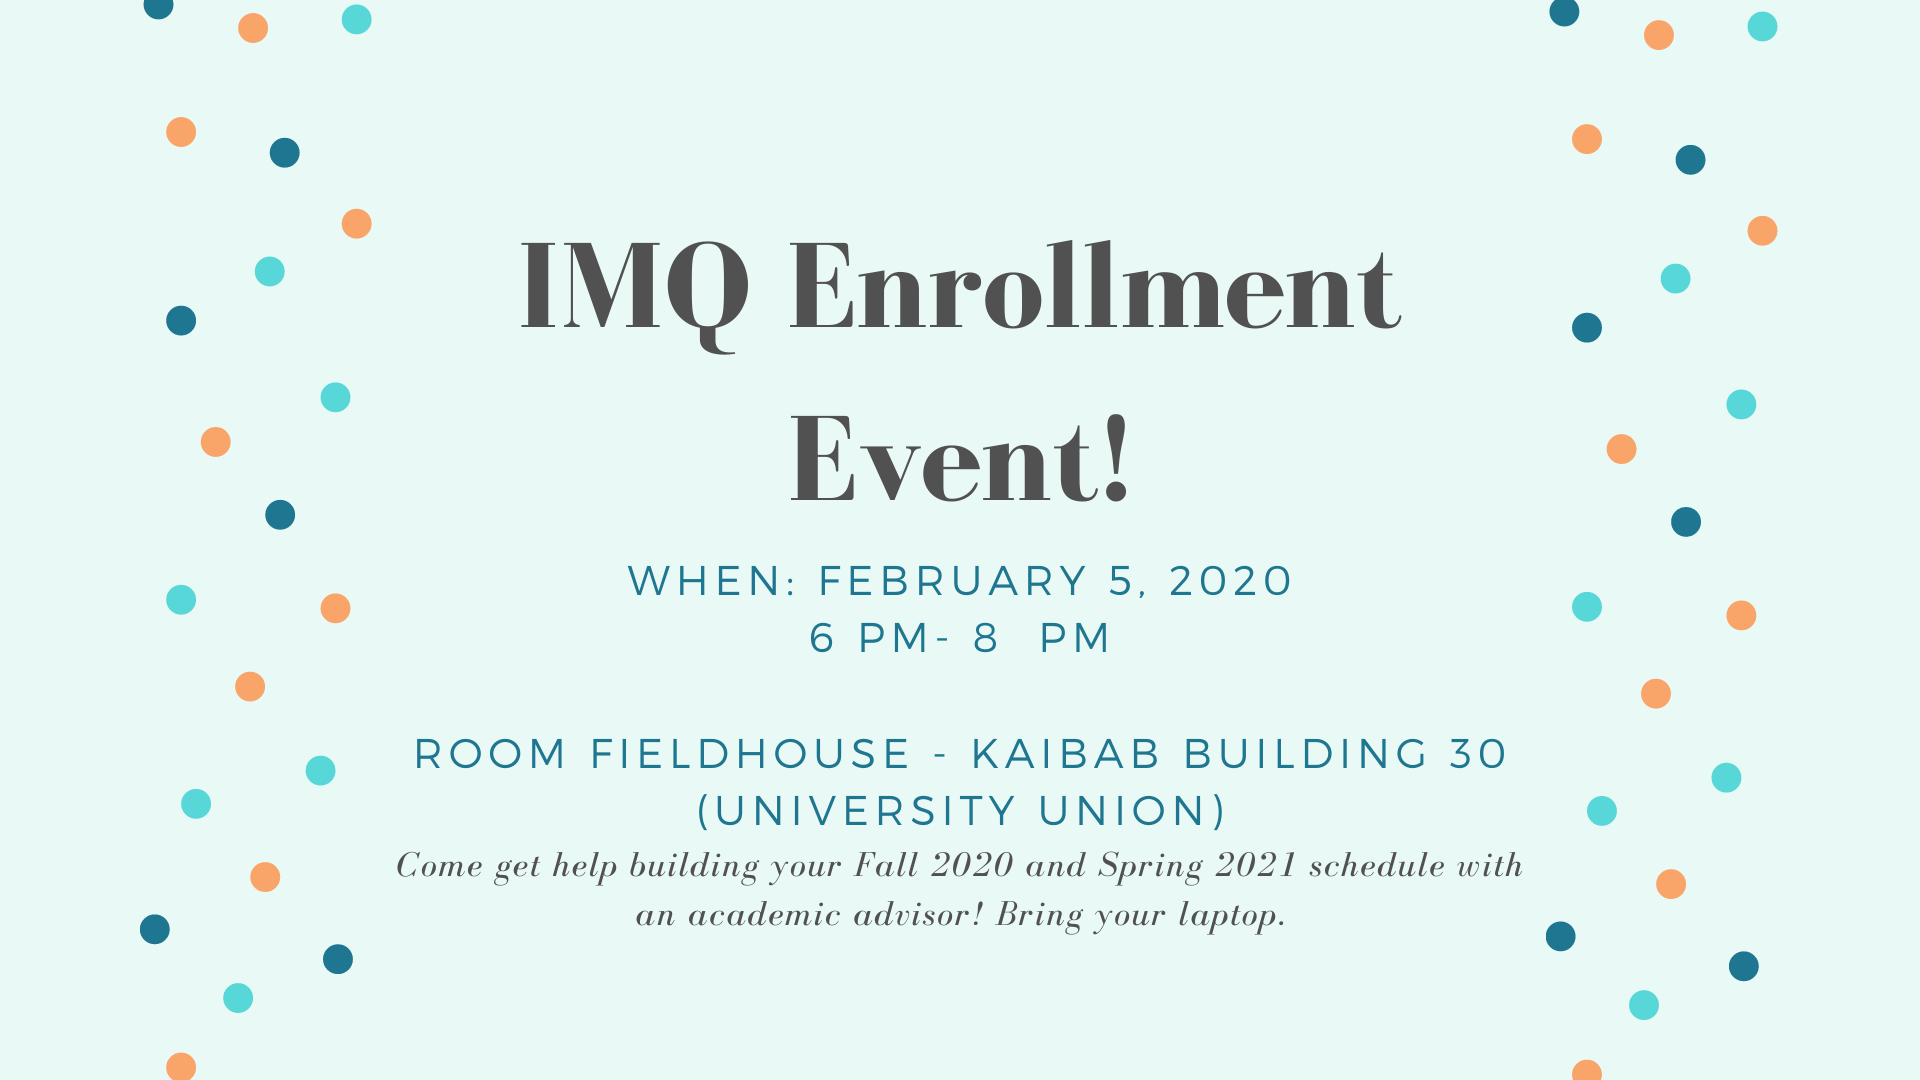 IMQ Enrollment Event